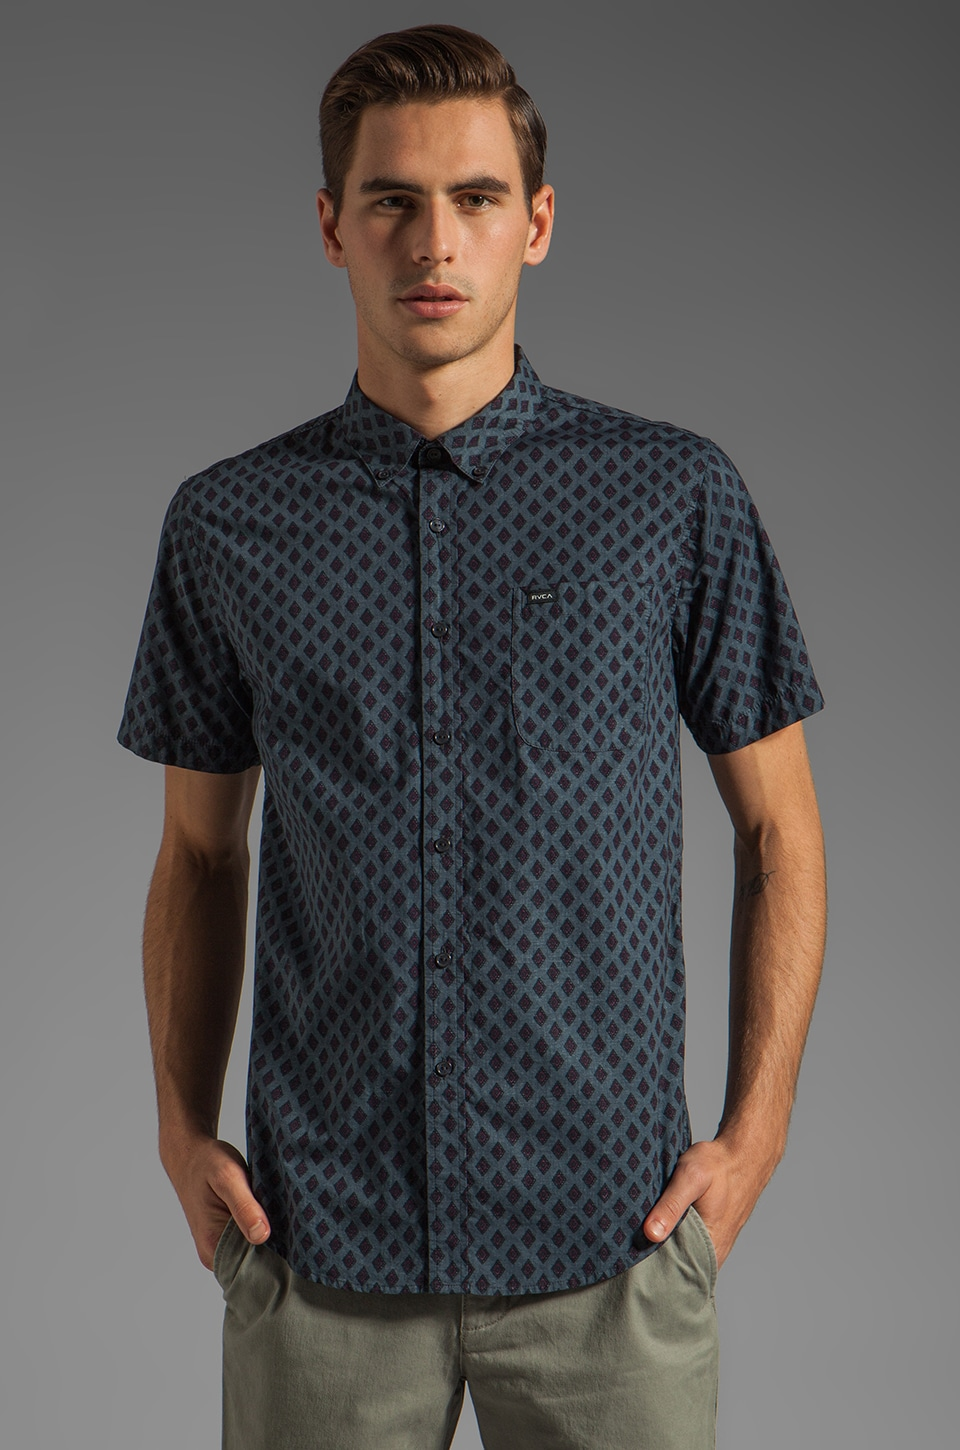 RVCA Falling S/S Shirt in Ink